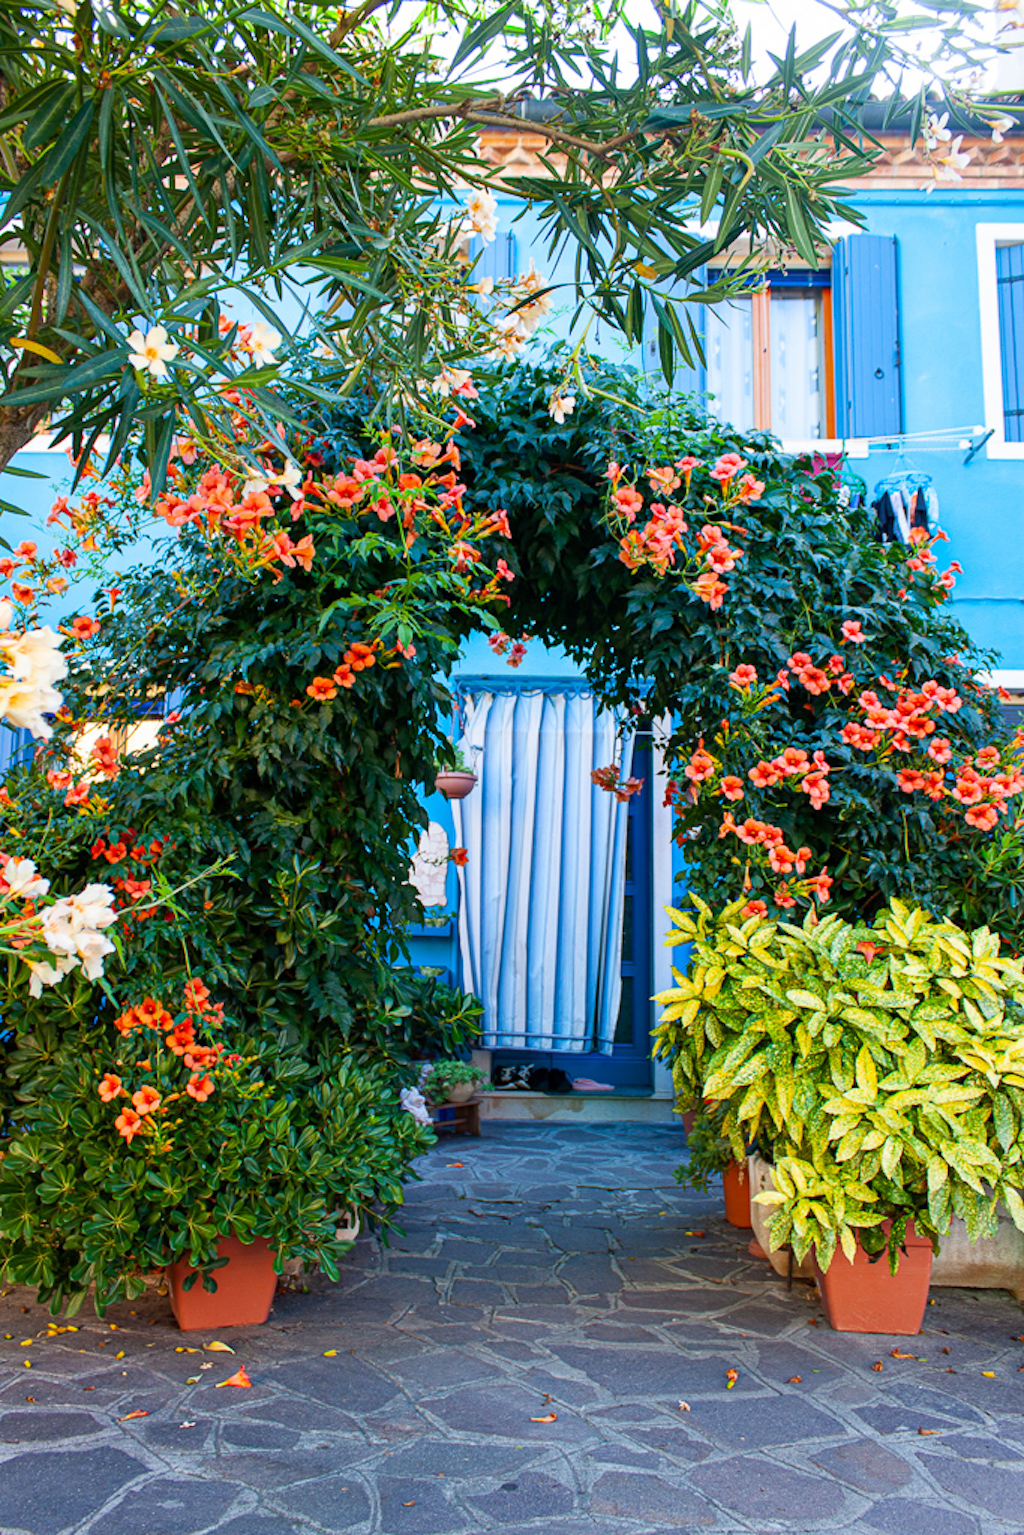 Visit Burano Italy - Flowers At Entrance